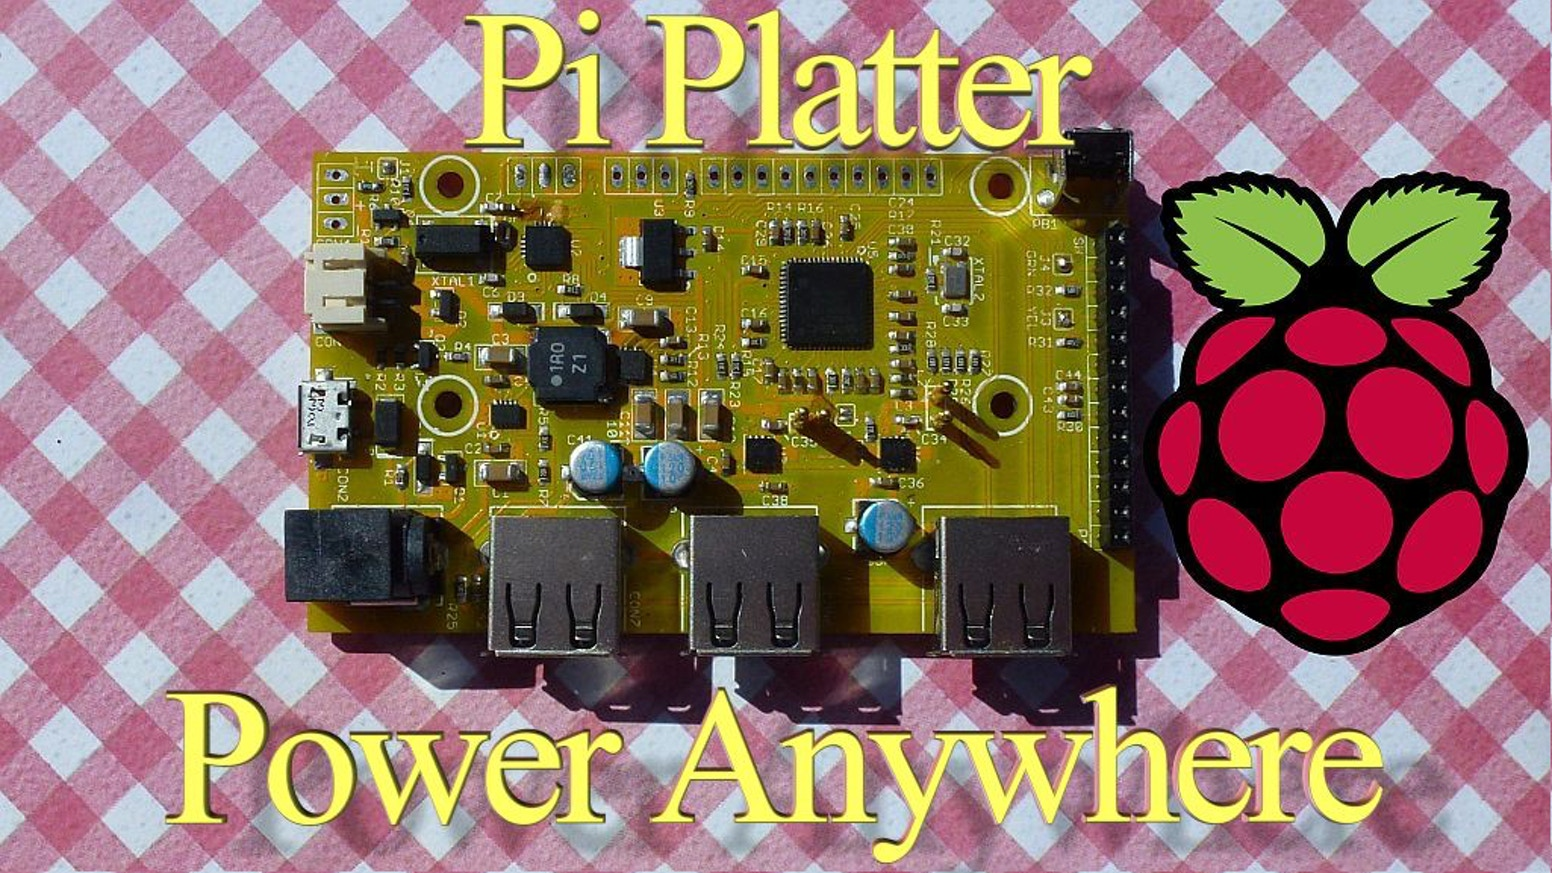 Solar Pi Platter - A versatile board for powering your Pi from the sun or battery and much more.  Come see what we've cooked up!